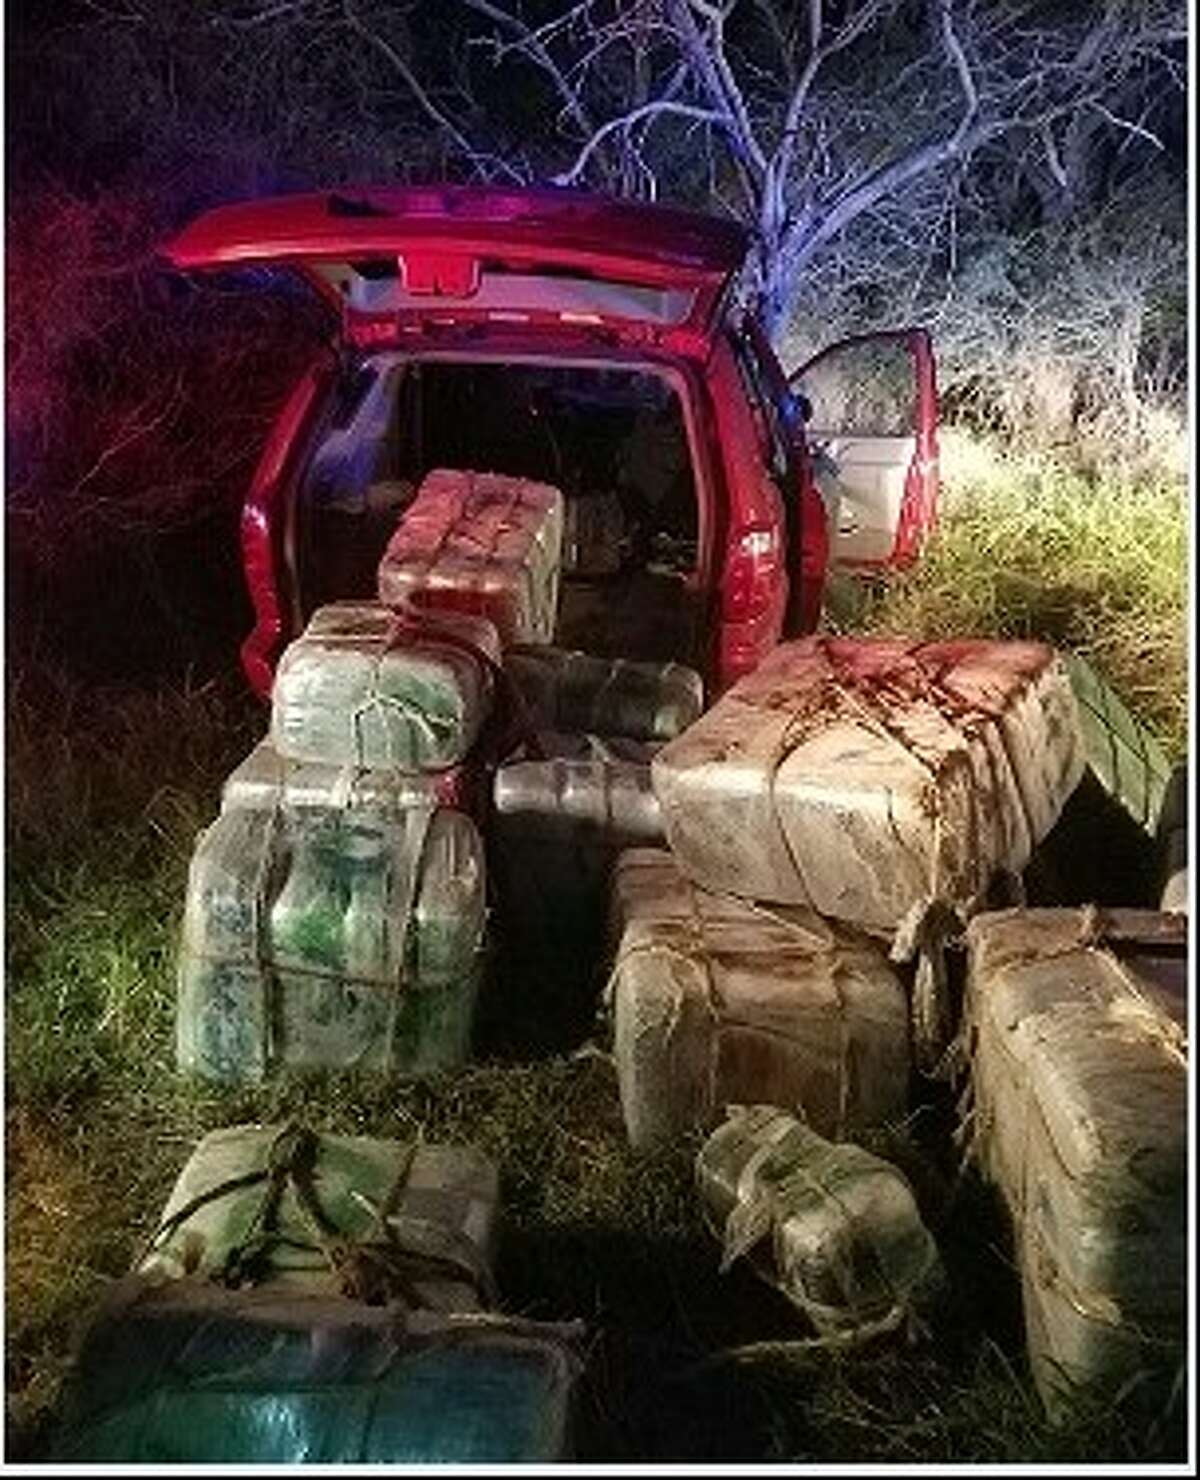 Rio Grande Valley Sector Border Patrol discovered 1,380 pounds of marijuana inside the vehicle, valued at over $1.1 million on Thursday Dec. 8, 2016.